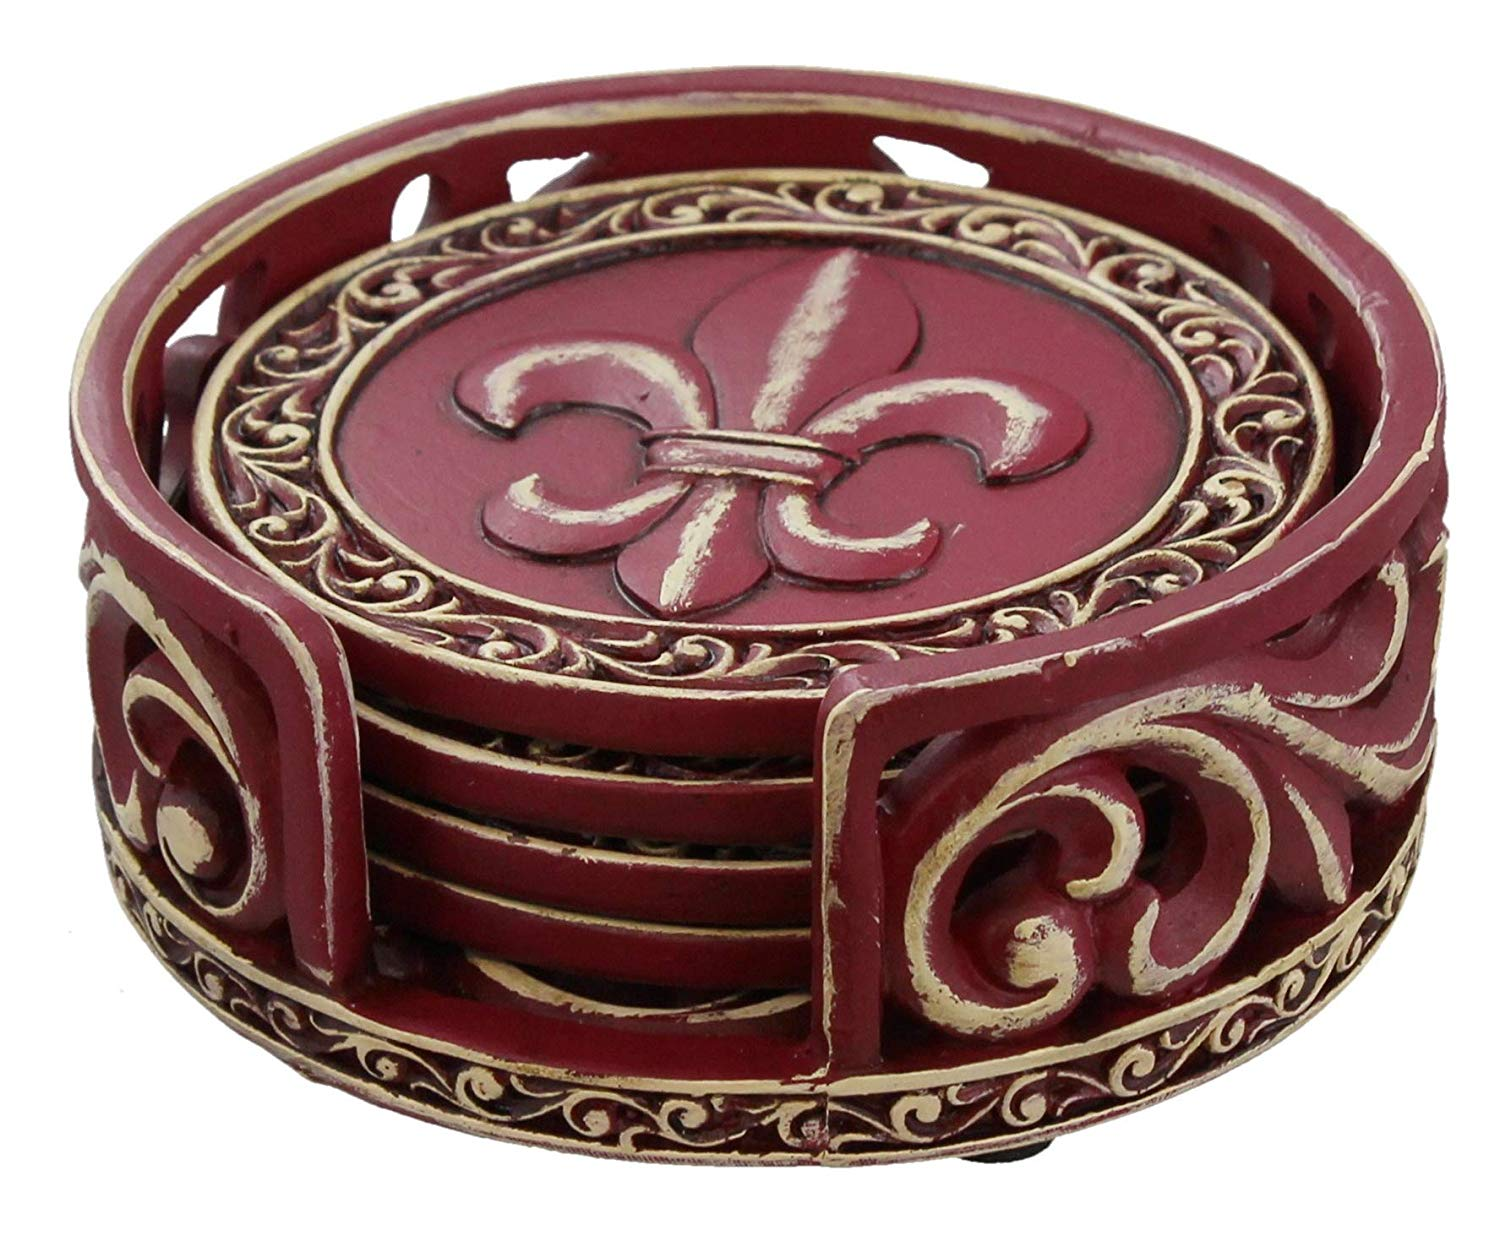 Old River Outdoors Rustic Fleur De Lis Coaster Set w/Ornate Holder (Burgundy)